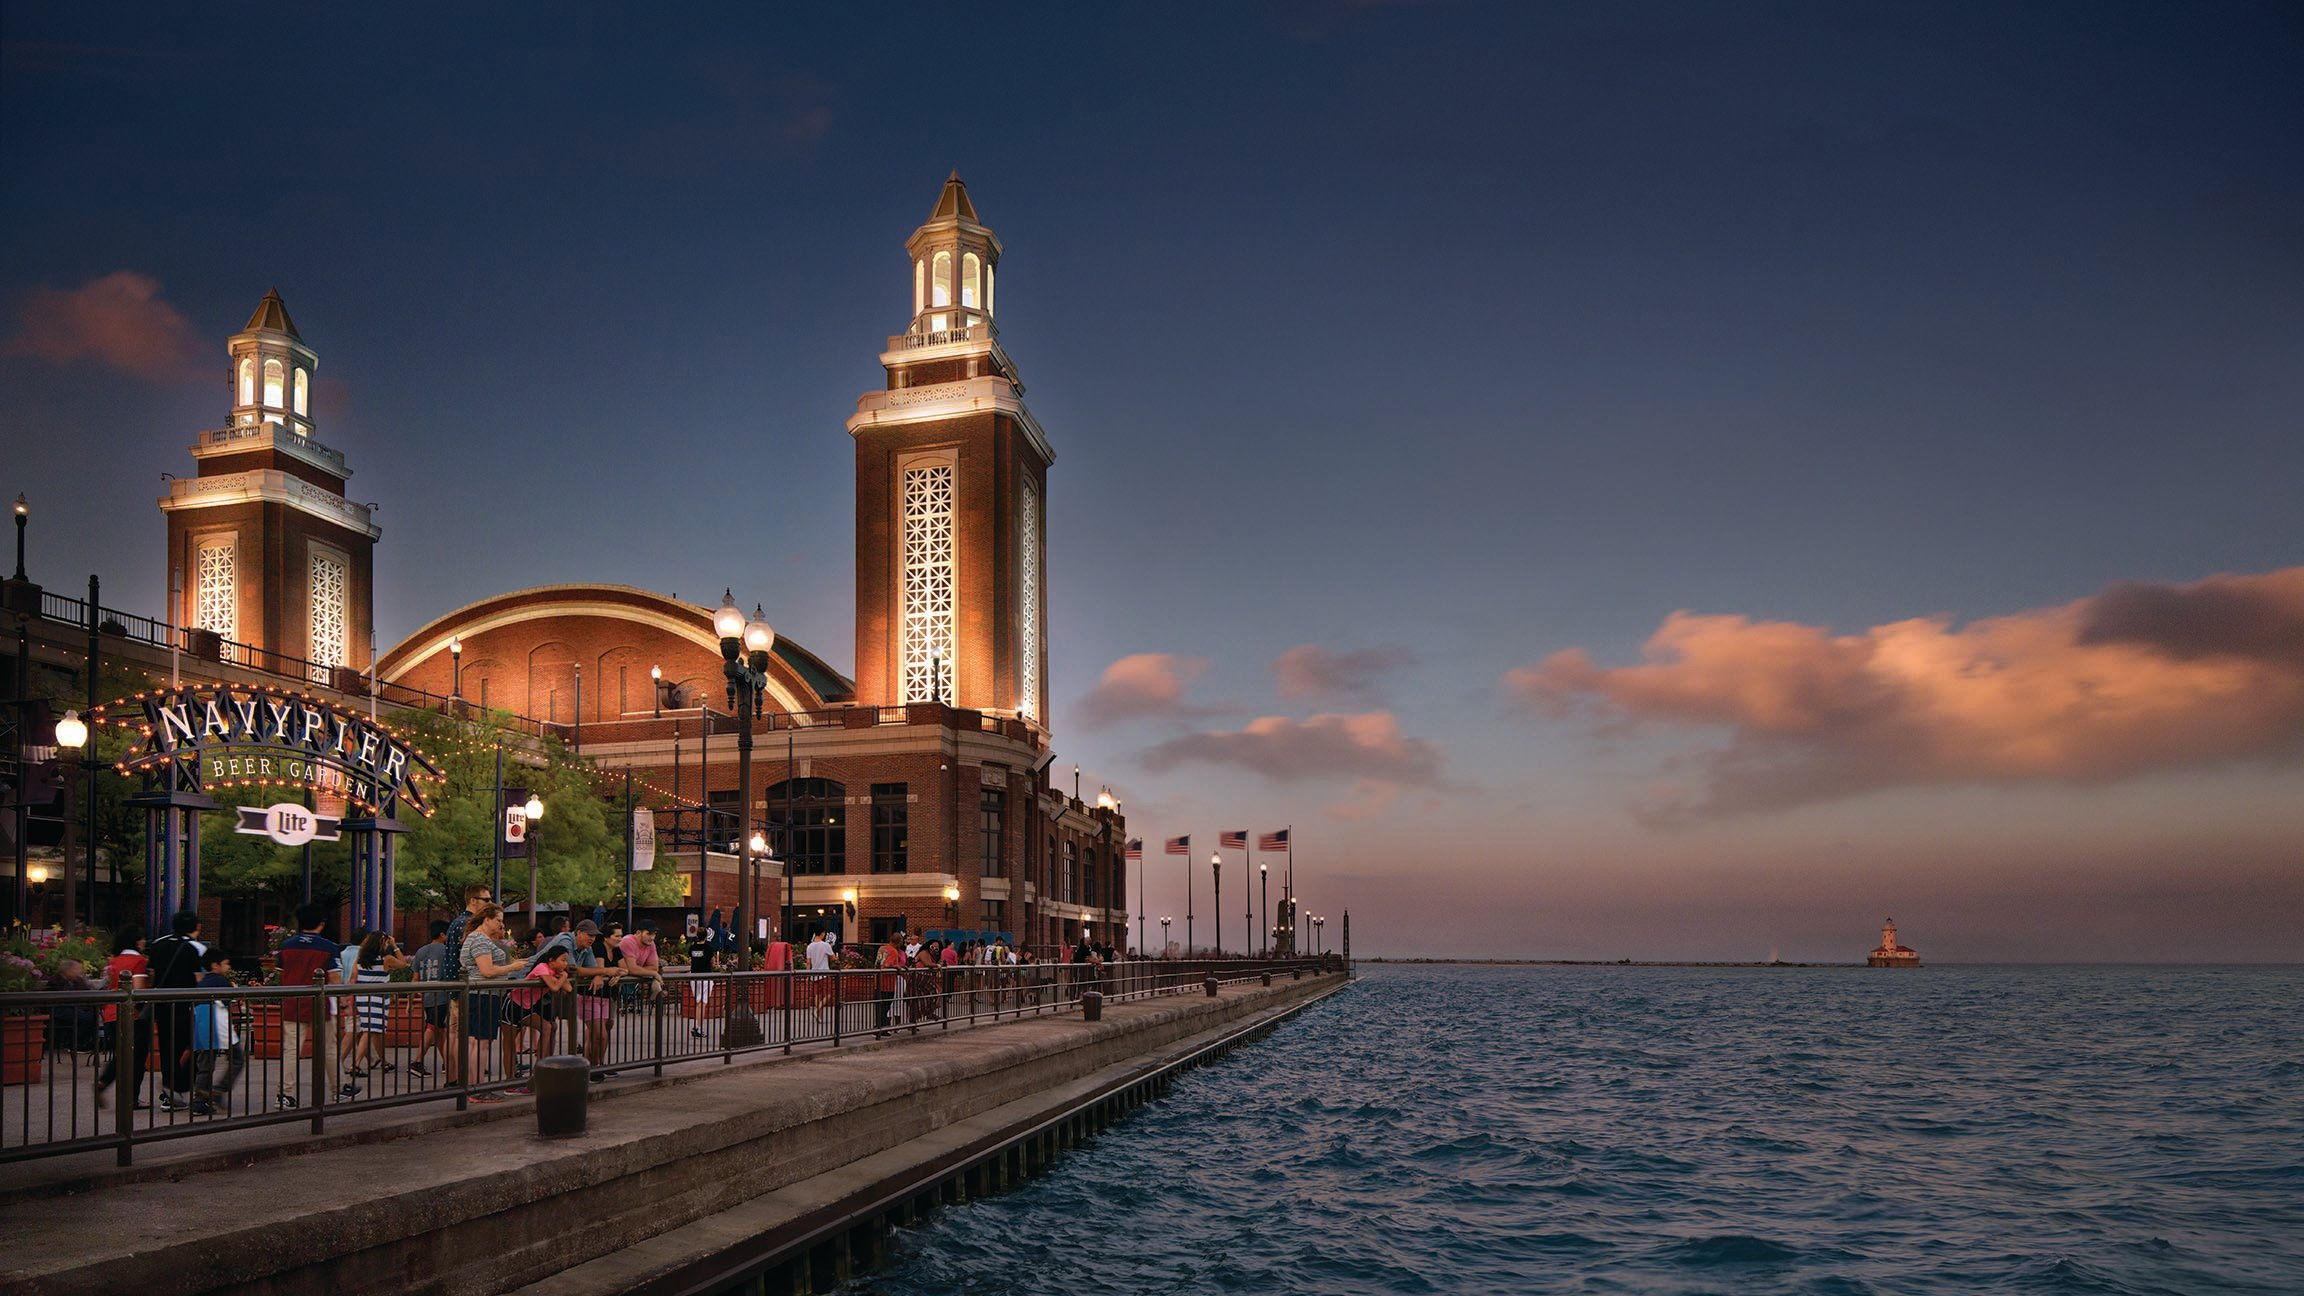 what s next for navy pier ceo marilynn gardner shares her vision